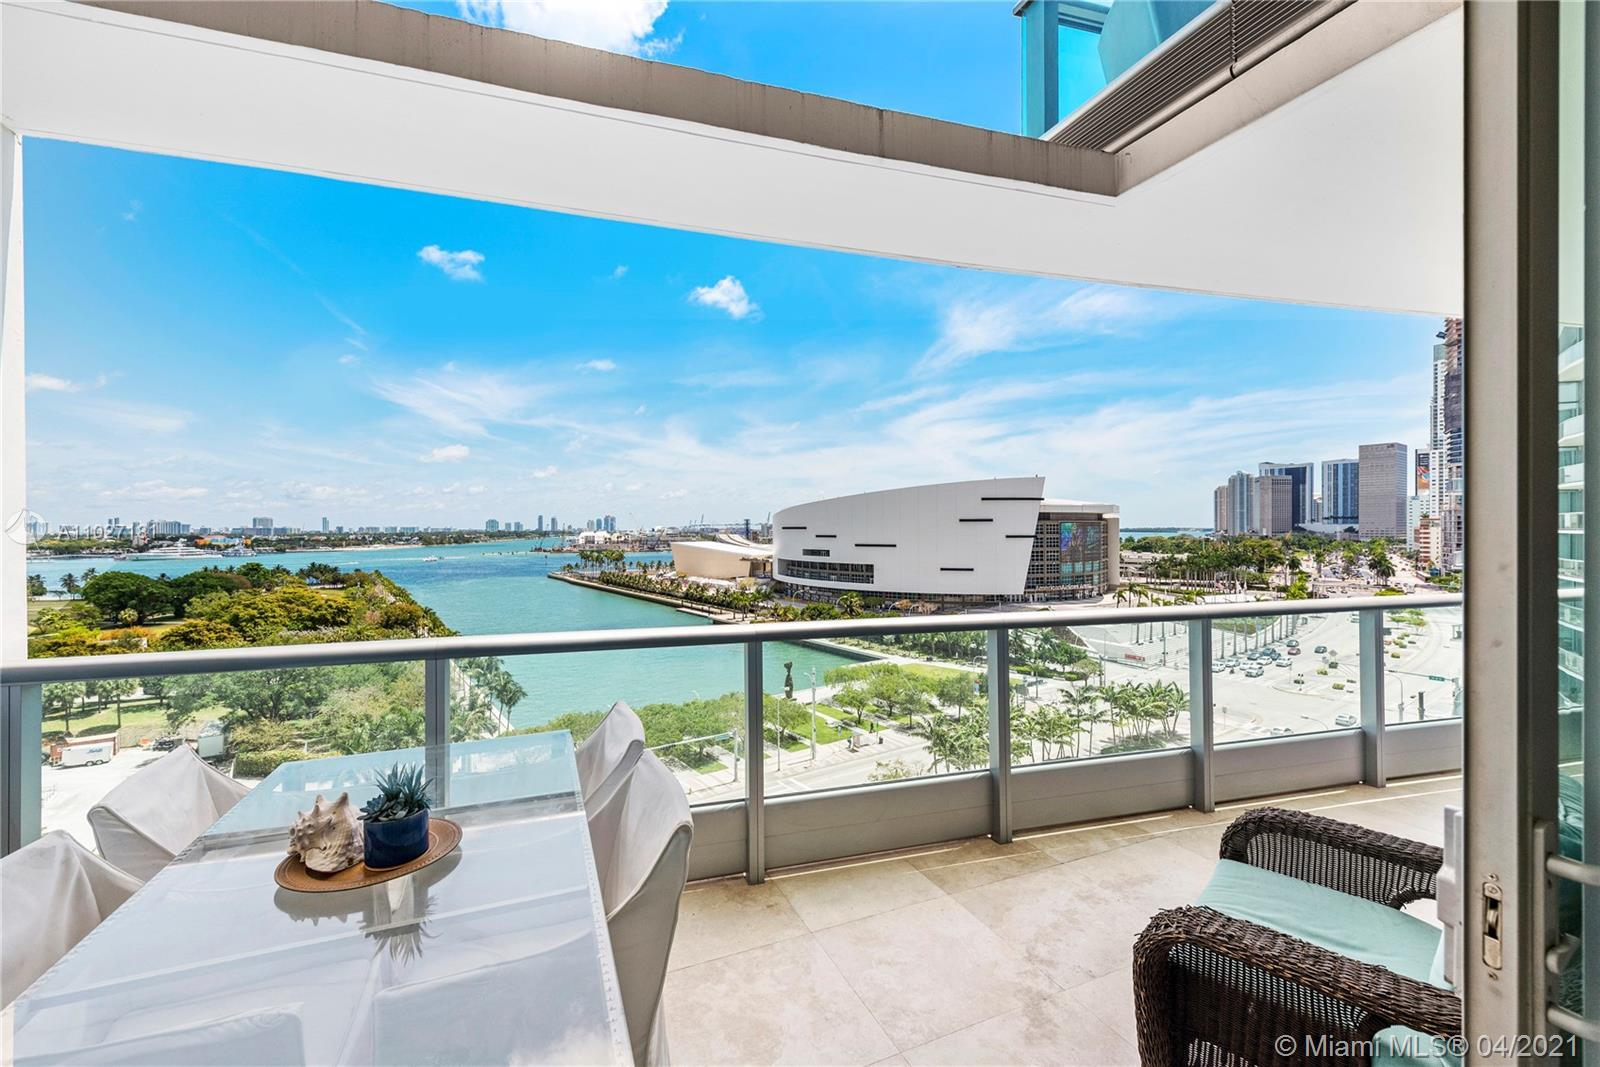 Beautiful two-story apartment with spectacular bay and ocean views. Spacious 3 Bed + Den, 3 Full Bat